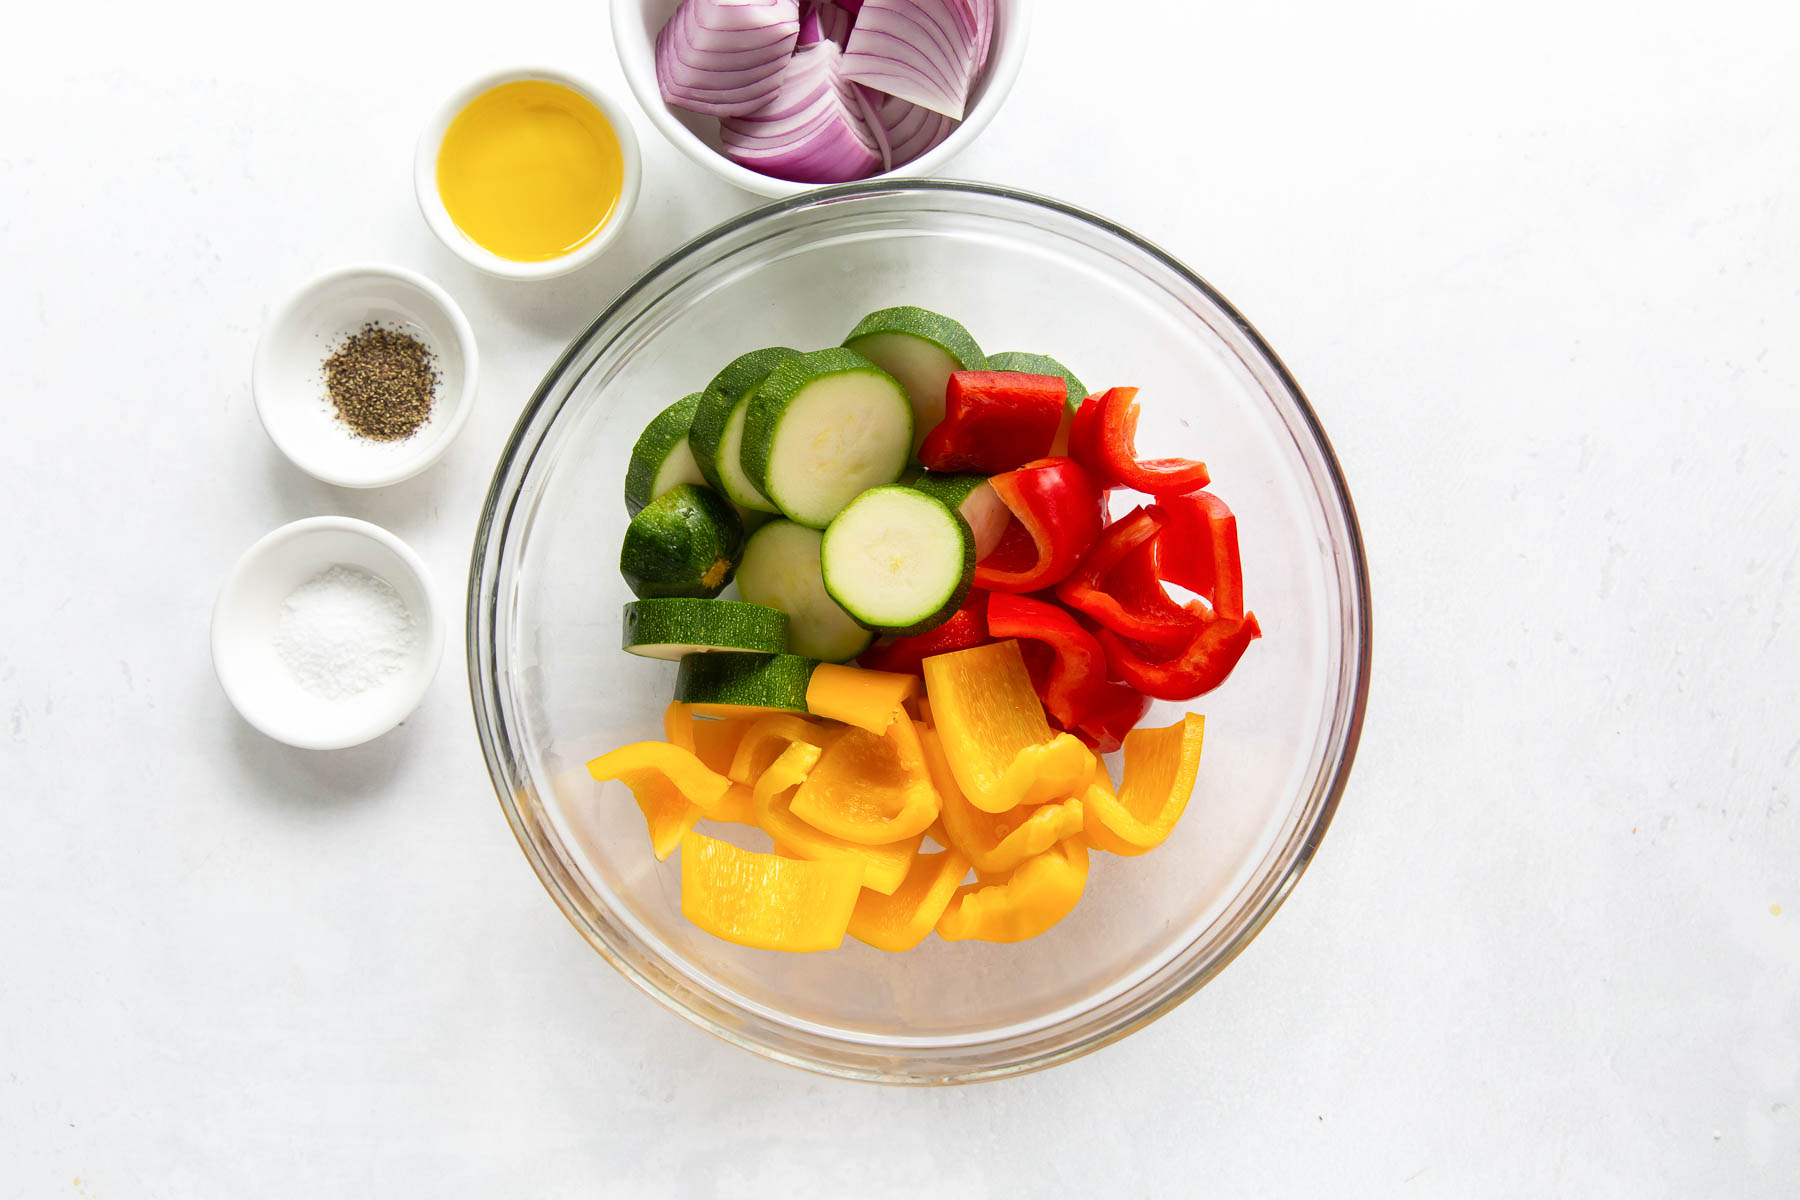 zucchini and bell peppers in a bowl with olive oil, salt, pepper and onion on the side